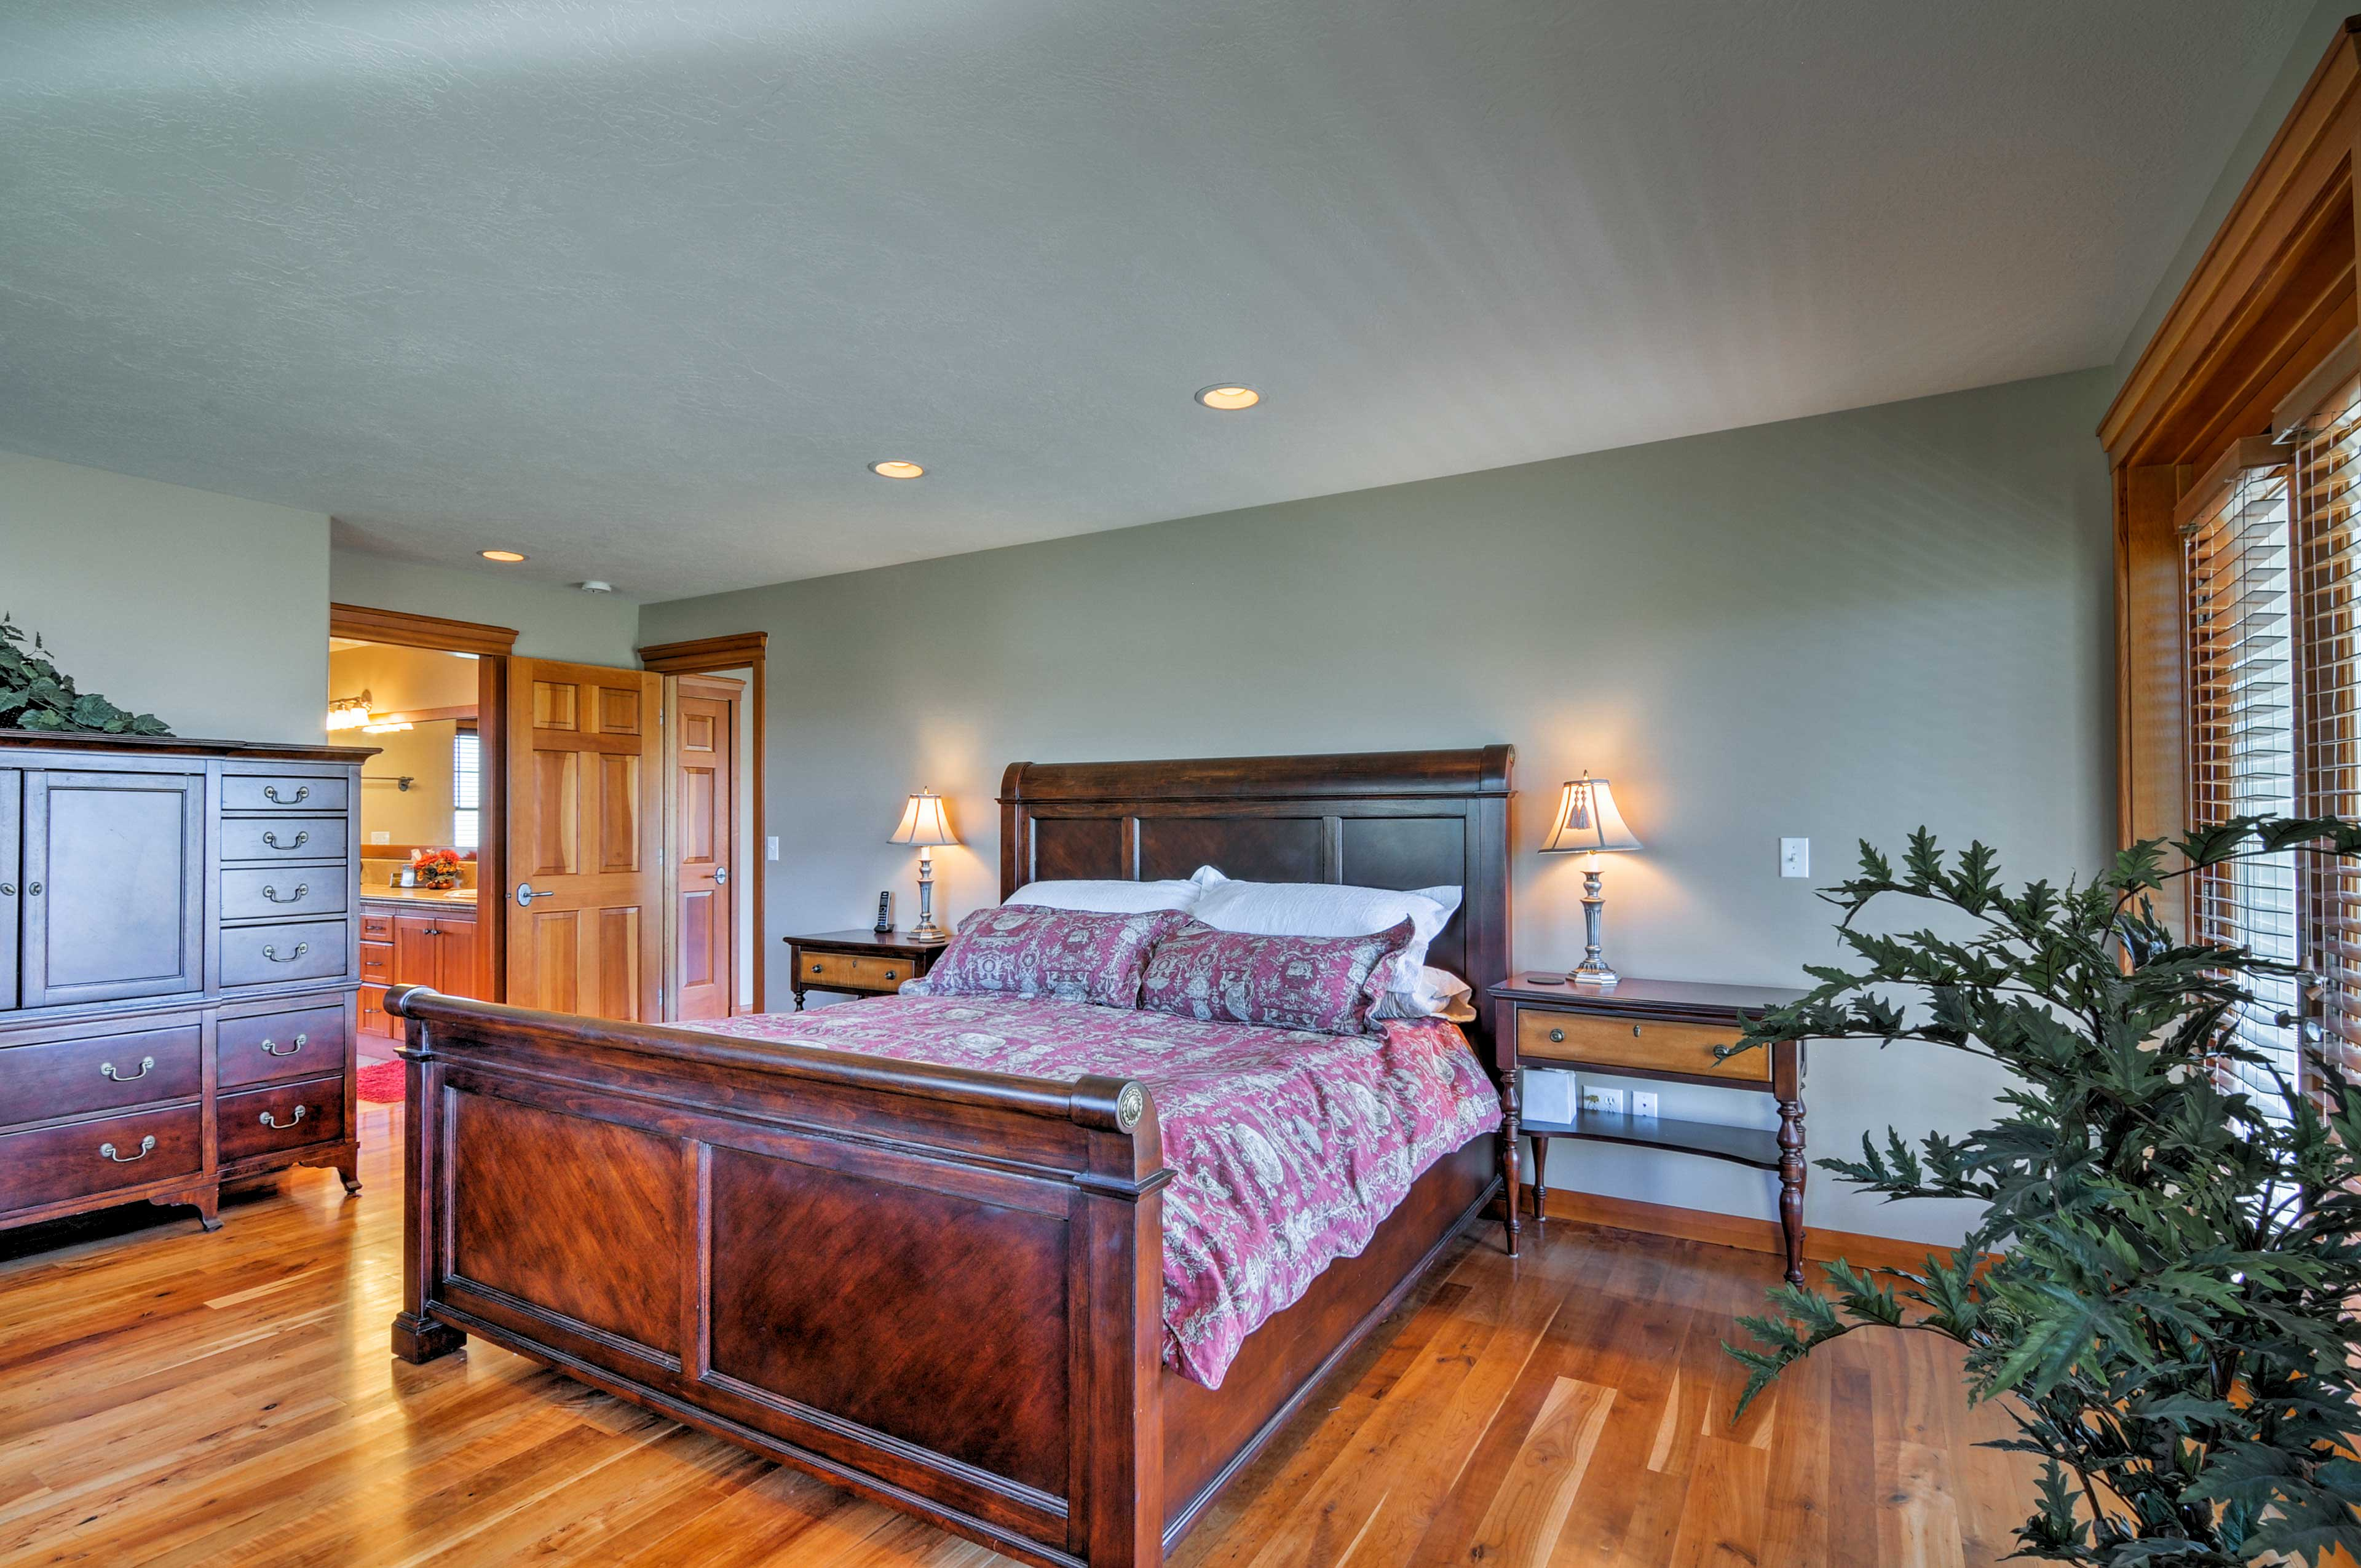 Sleep soundly in this elegant king-sized bed.